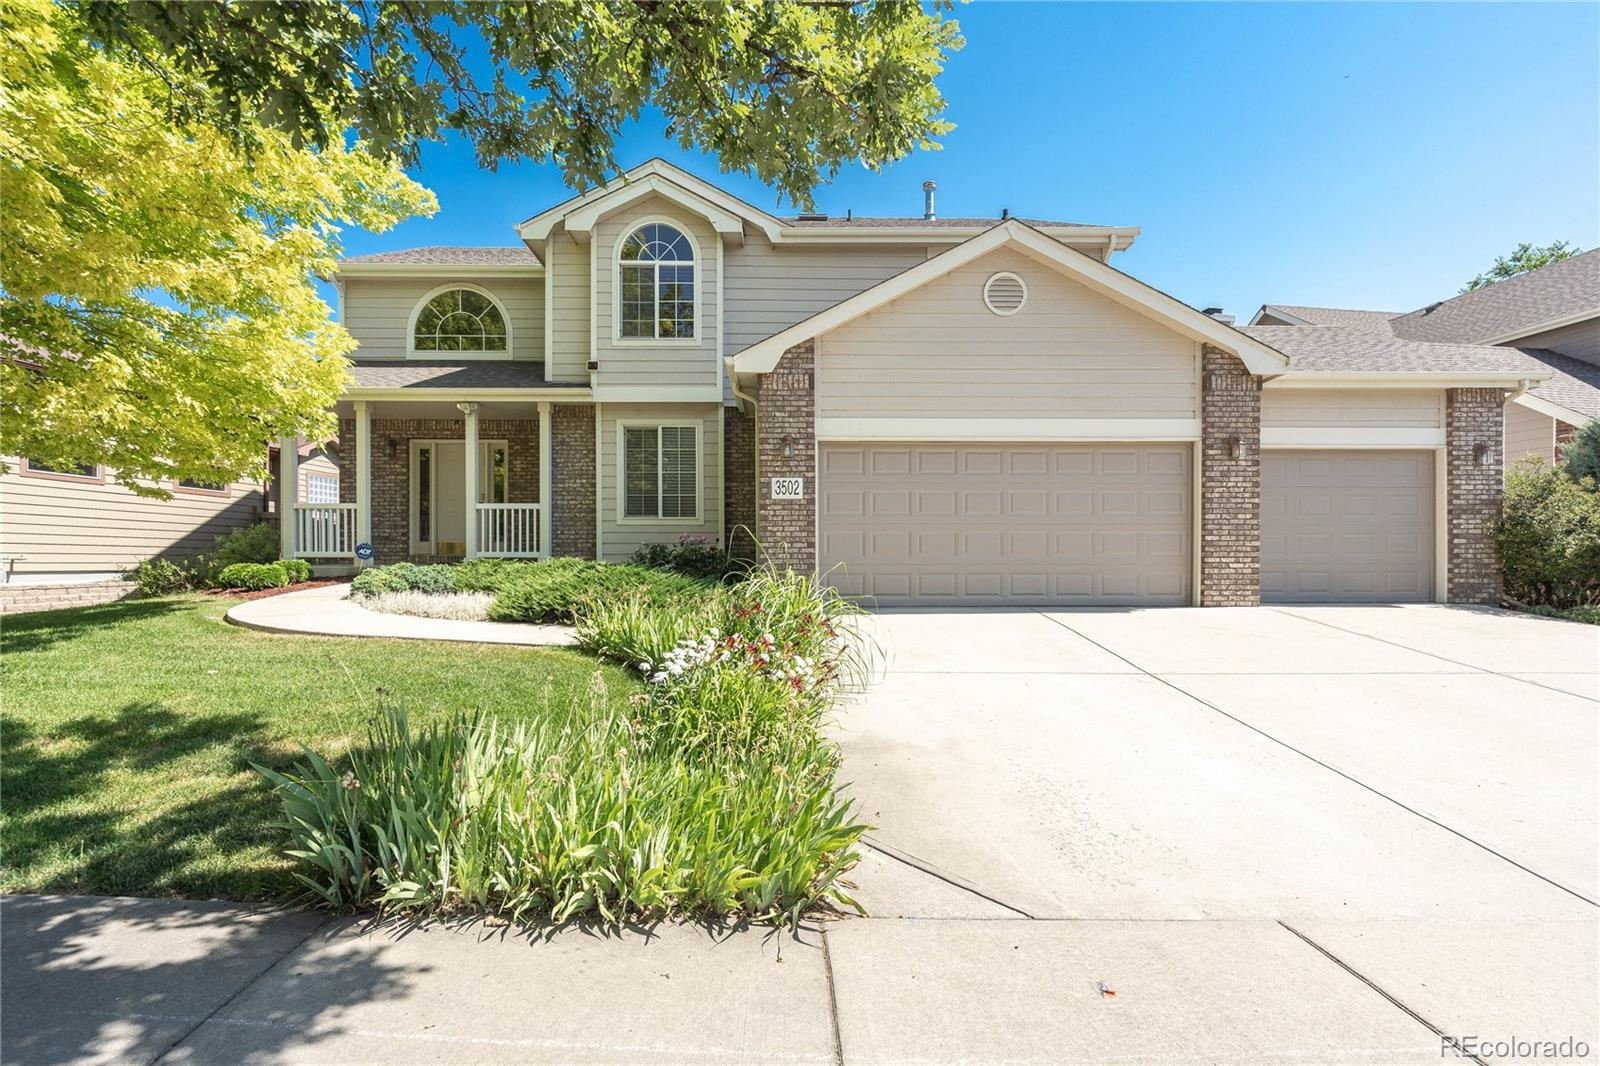 3502 Shallow Pond Drive, Fort Collins, CO 80528 - #: 6162581